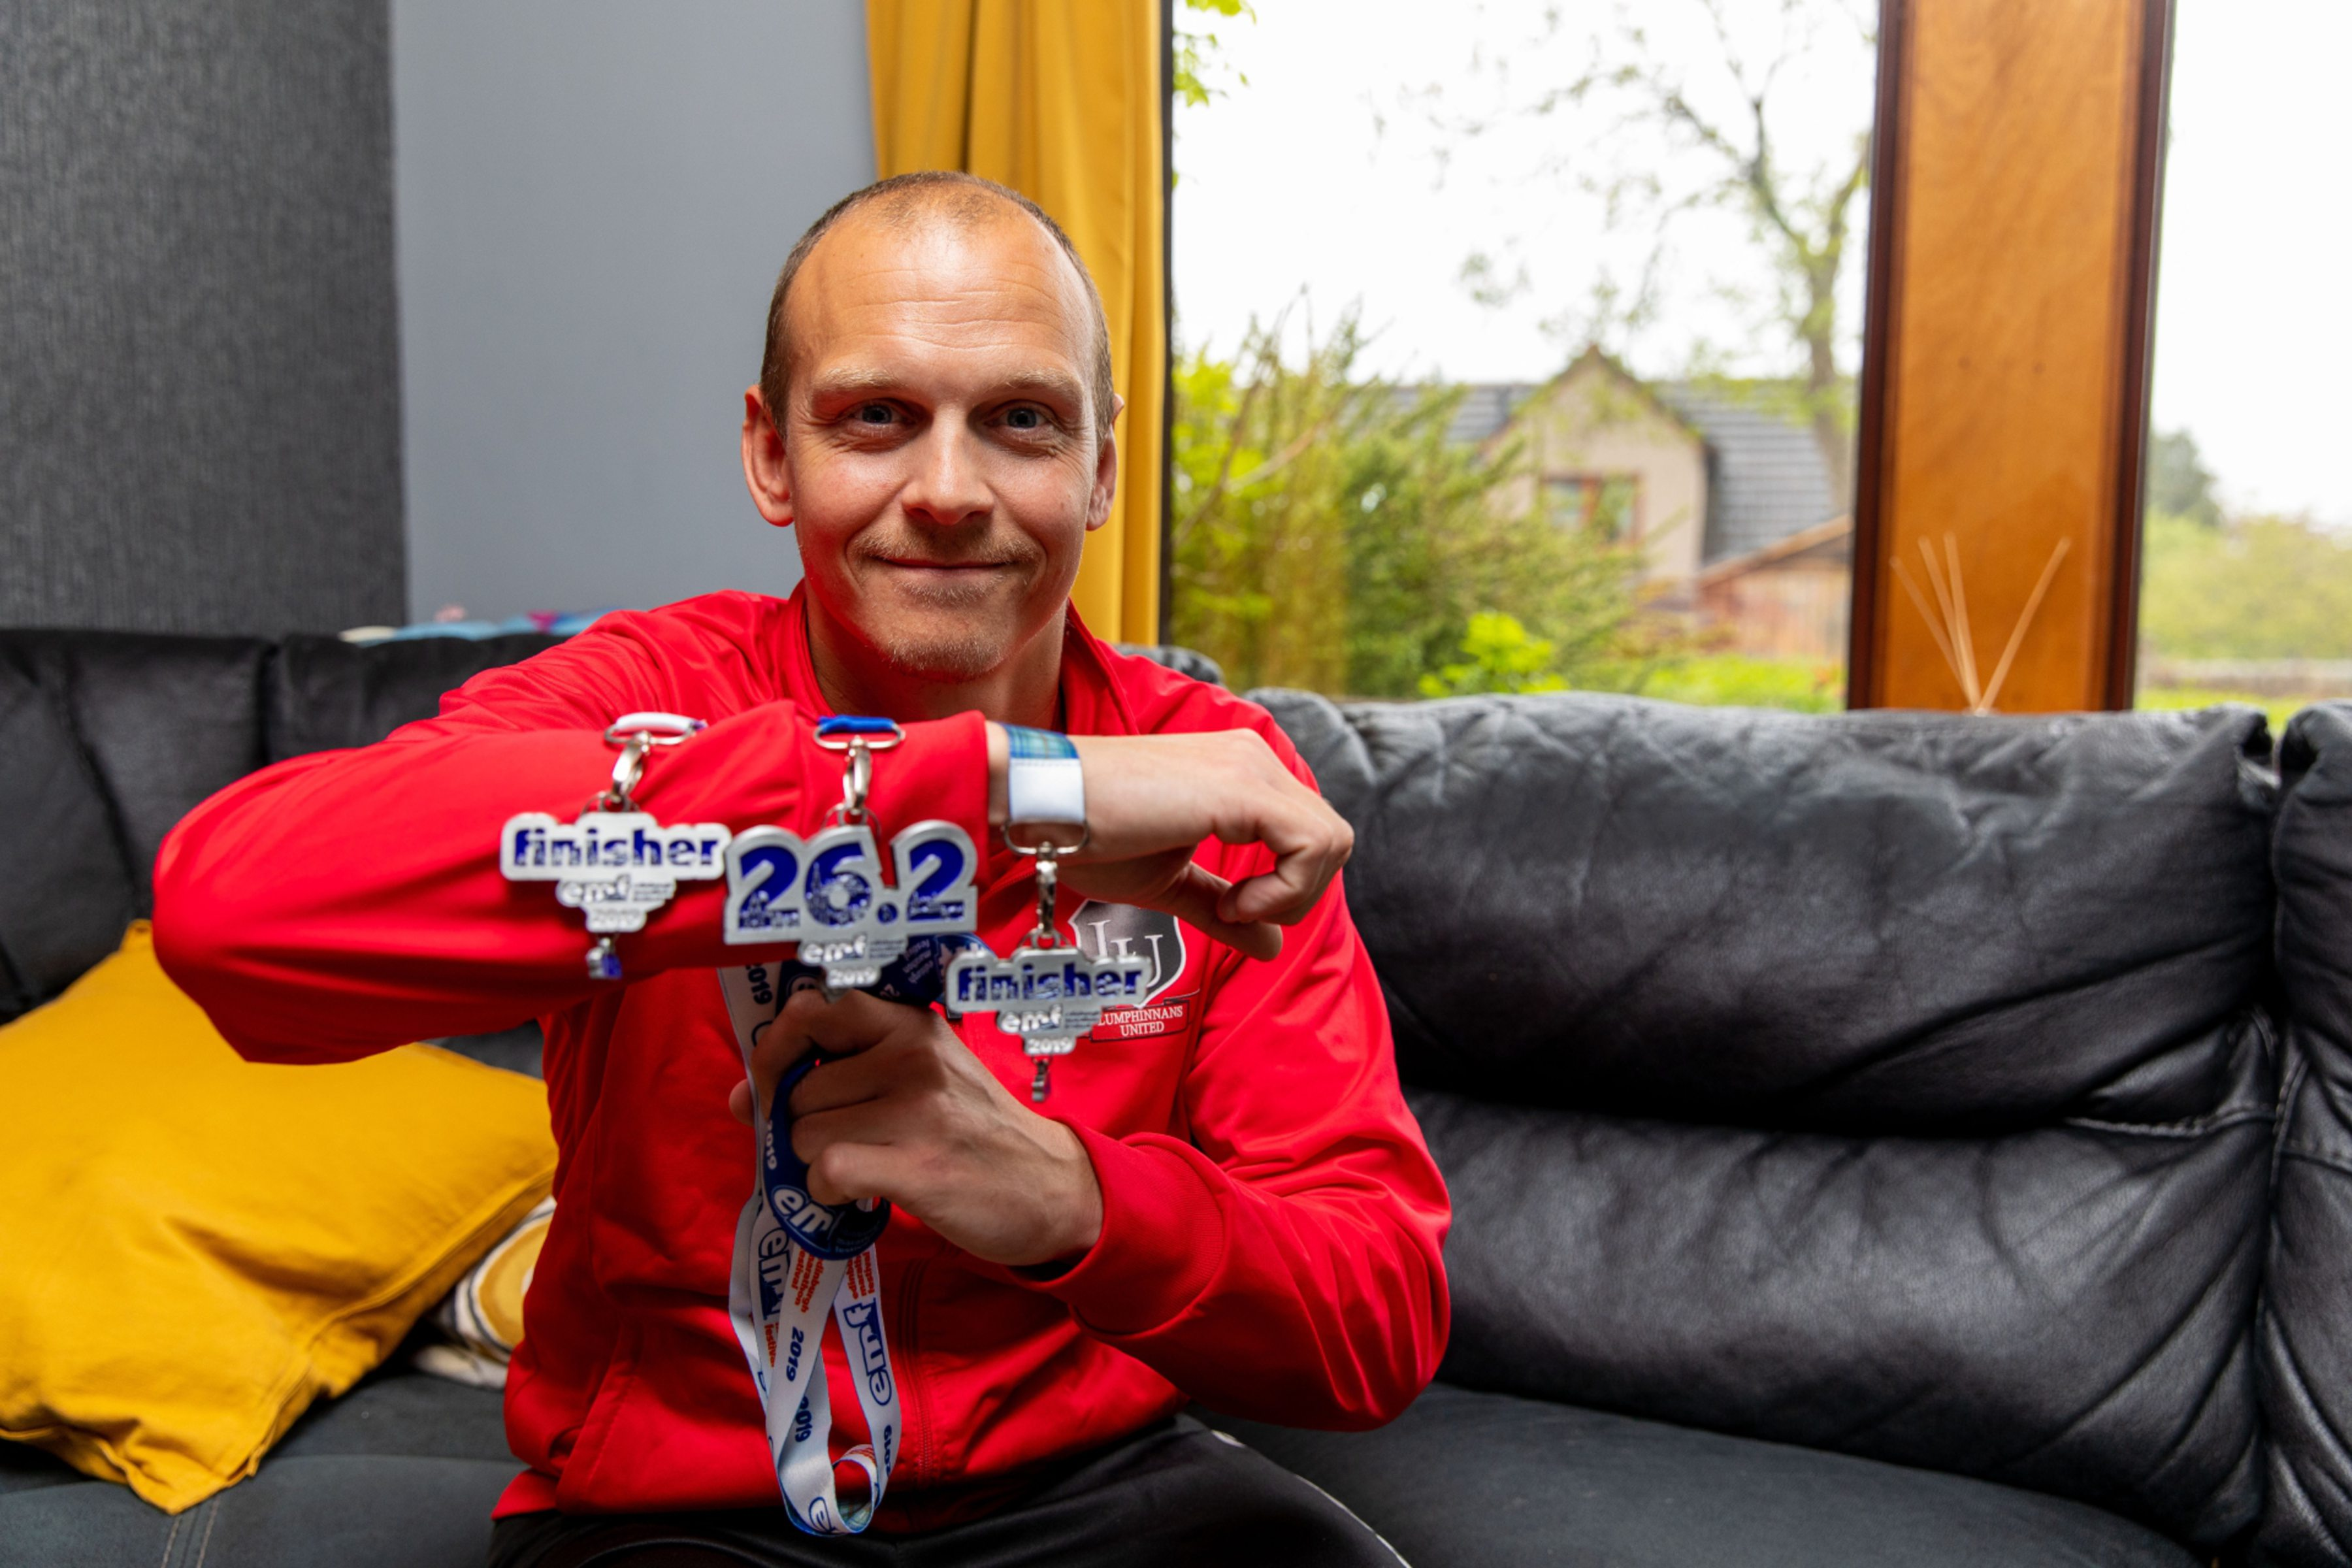 Mike with his medals.